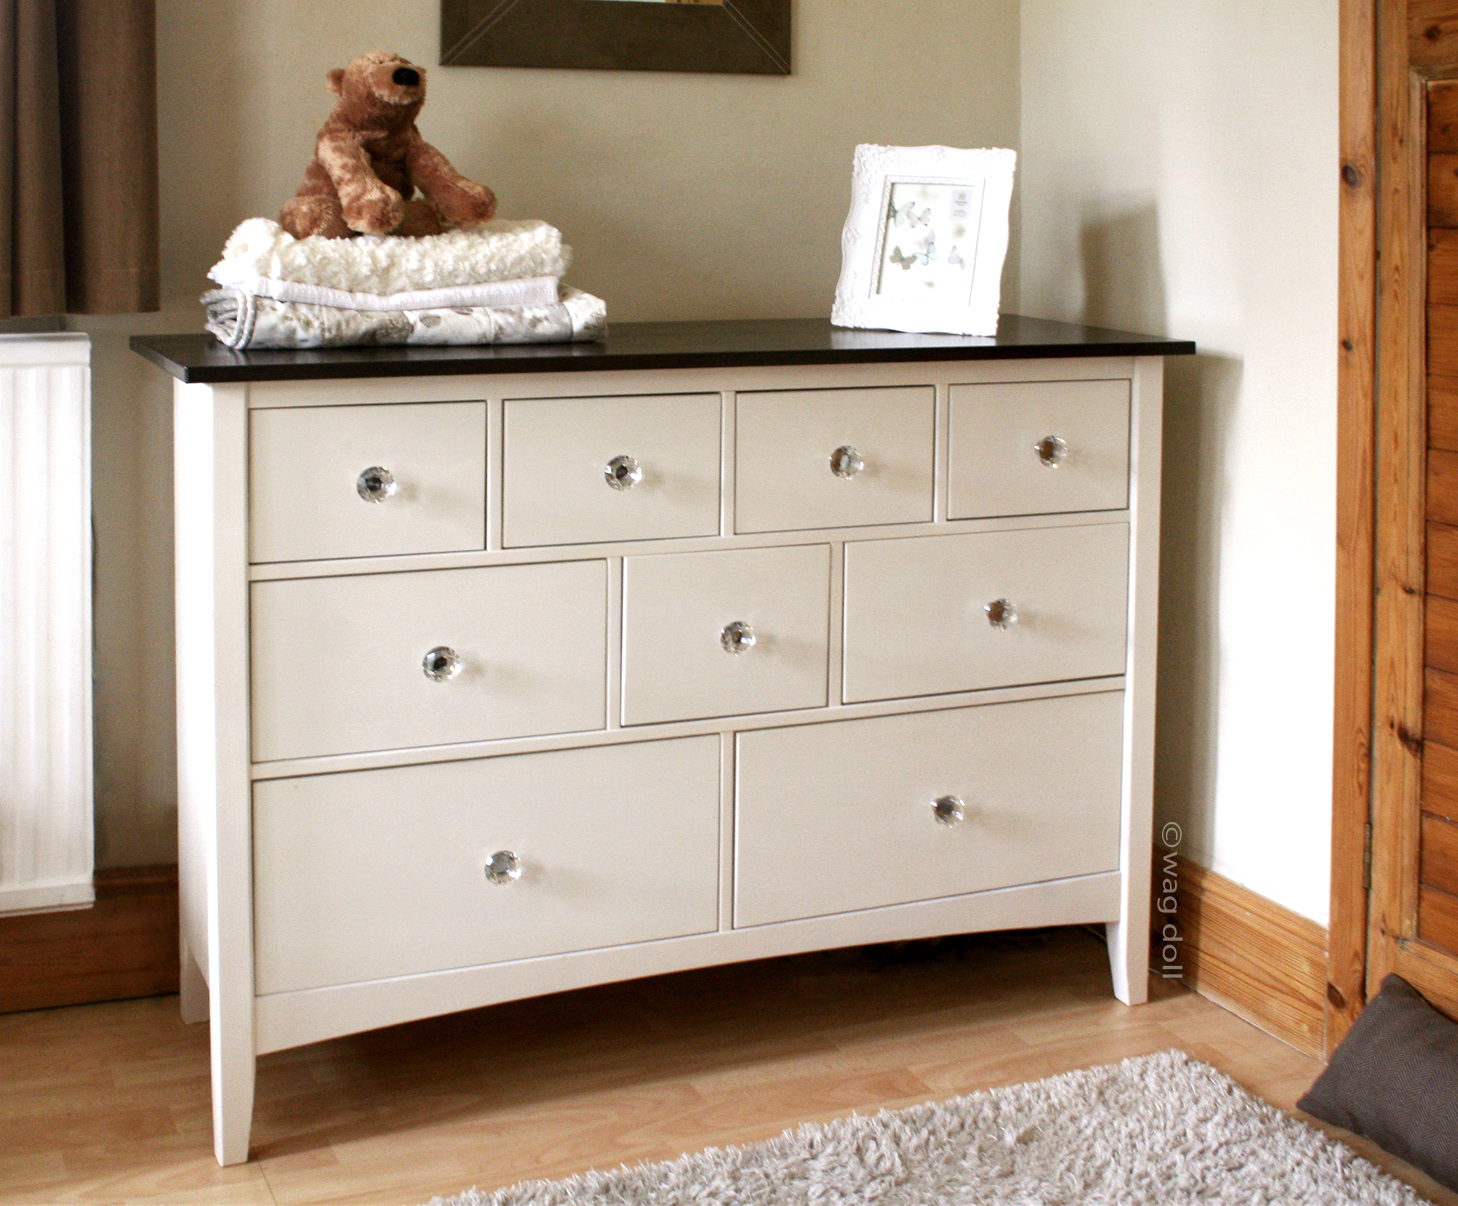 A Nursery Chest Of Drawers How To Spray Paint Furniture